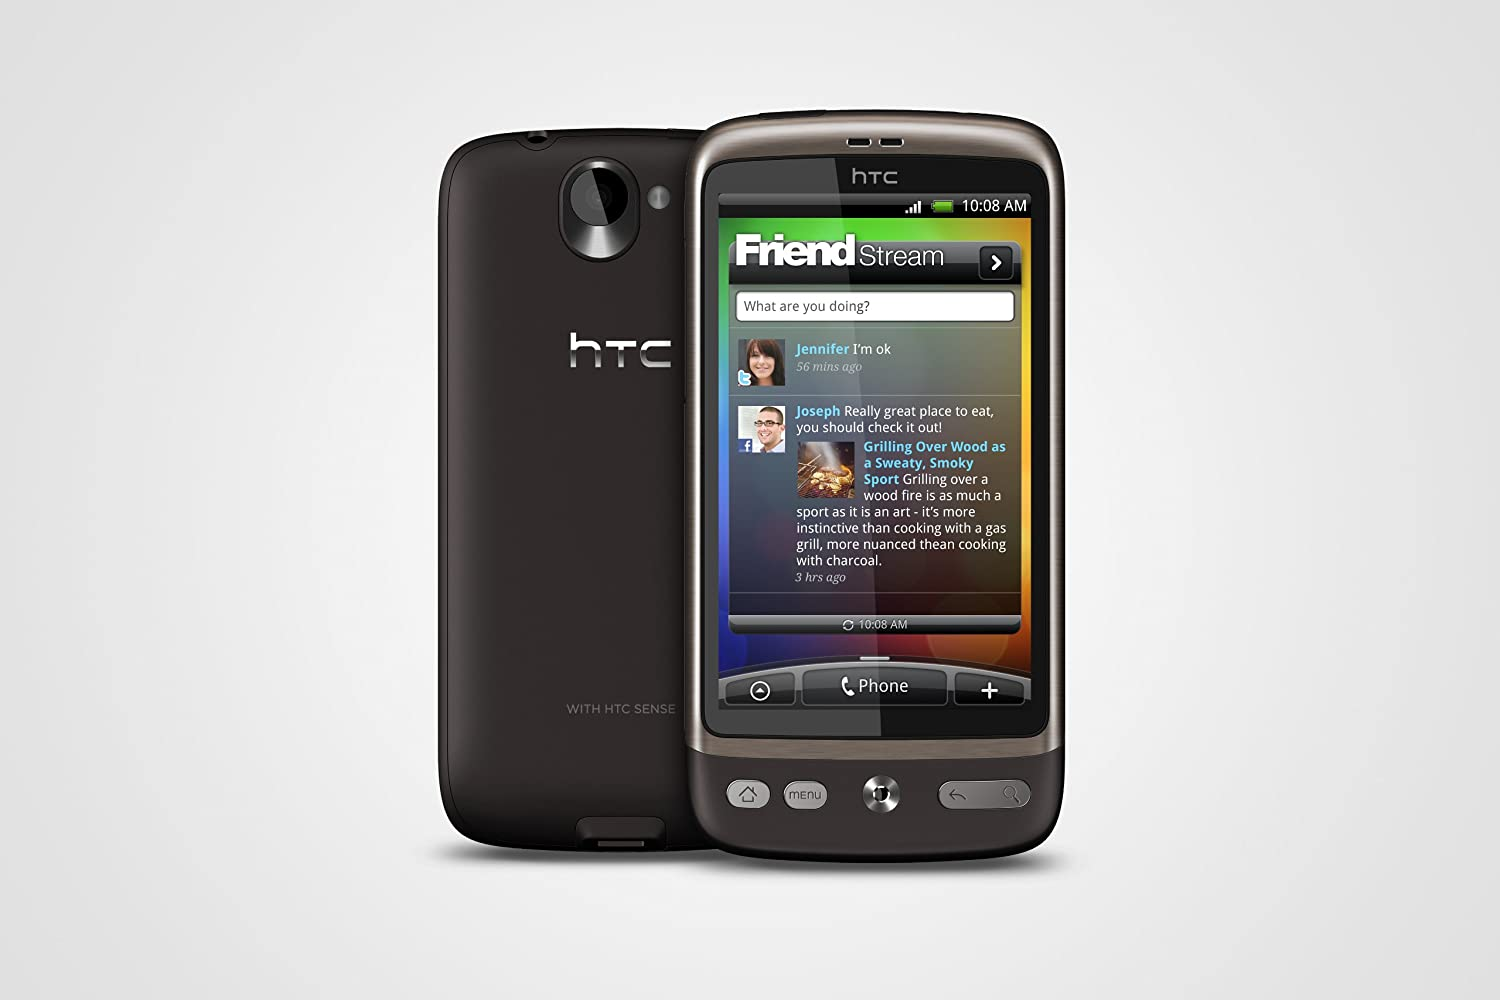 HTC Desire - Smartphone - 3G - WCDMA (UMTS) / GSM - touch - Android:  Amazon.co.uk: Electronics